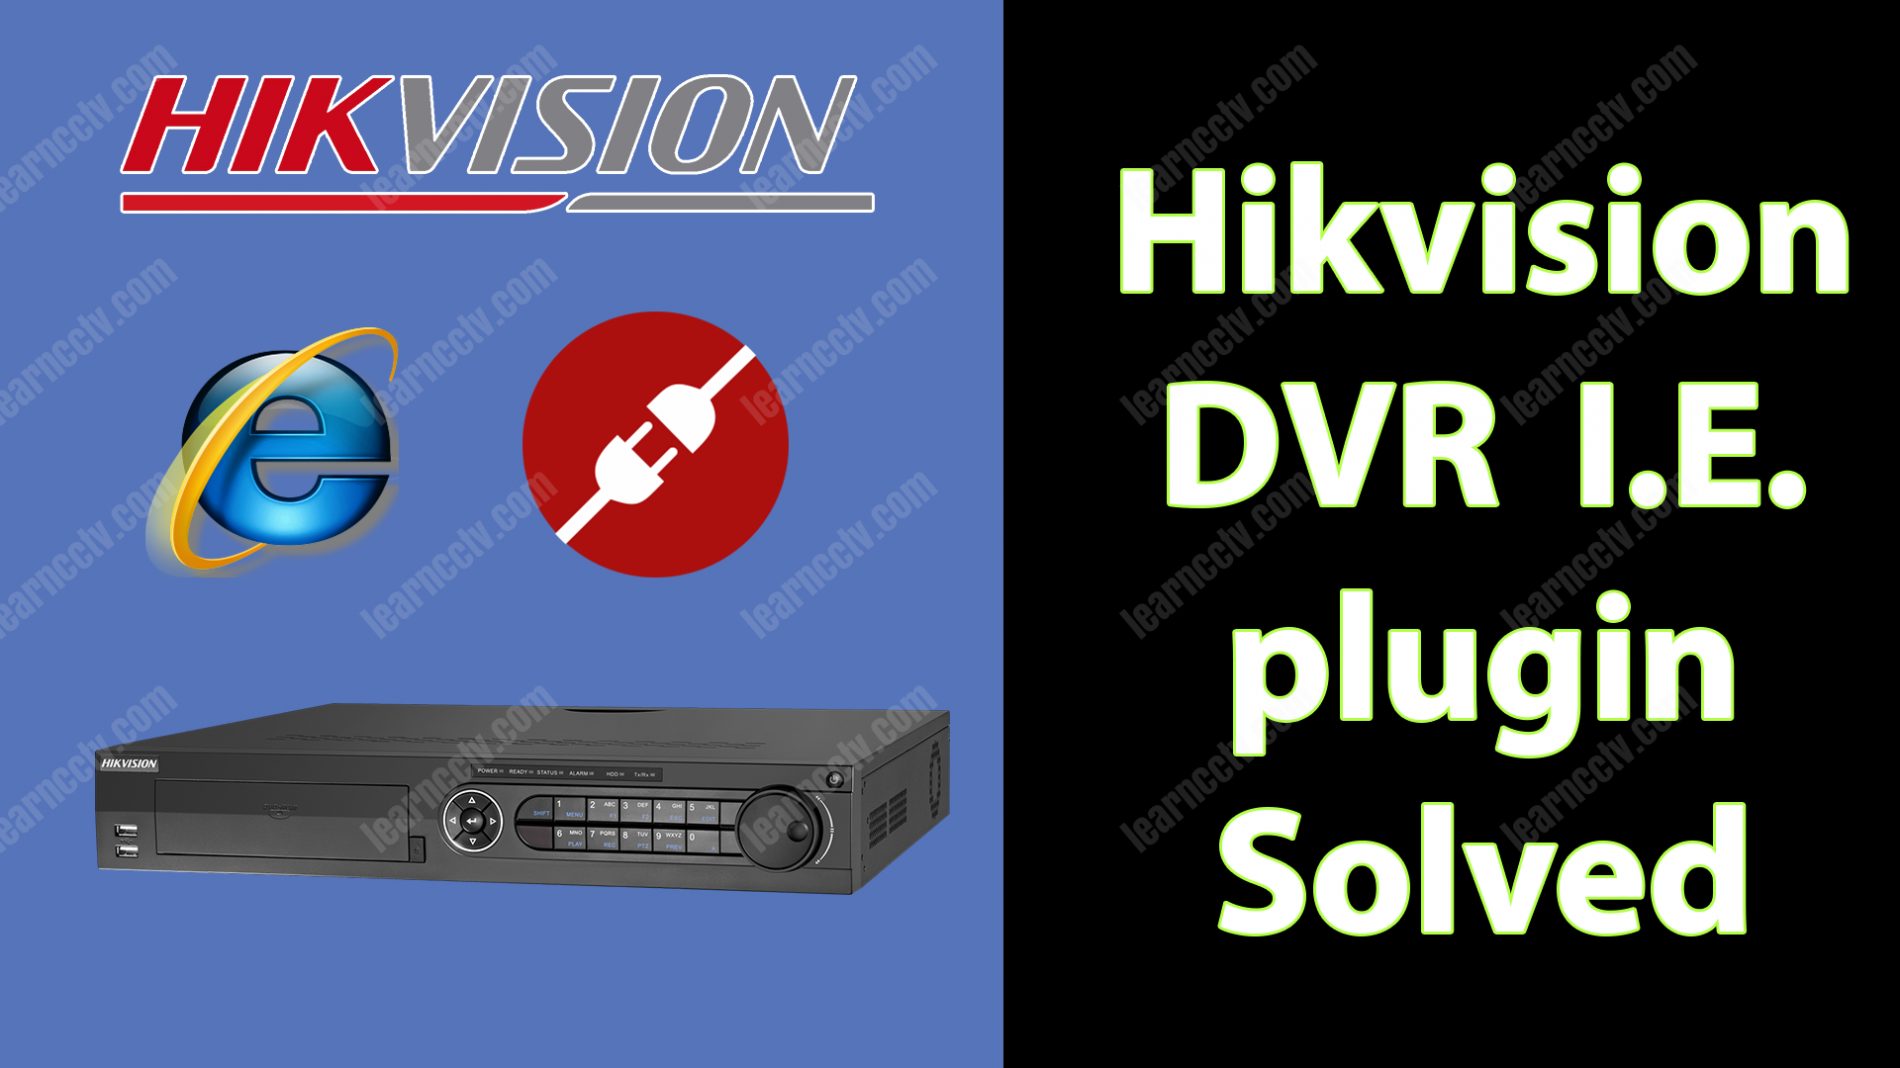 """Hikvision """"please click here to download and install the plugin-in."""